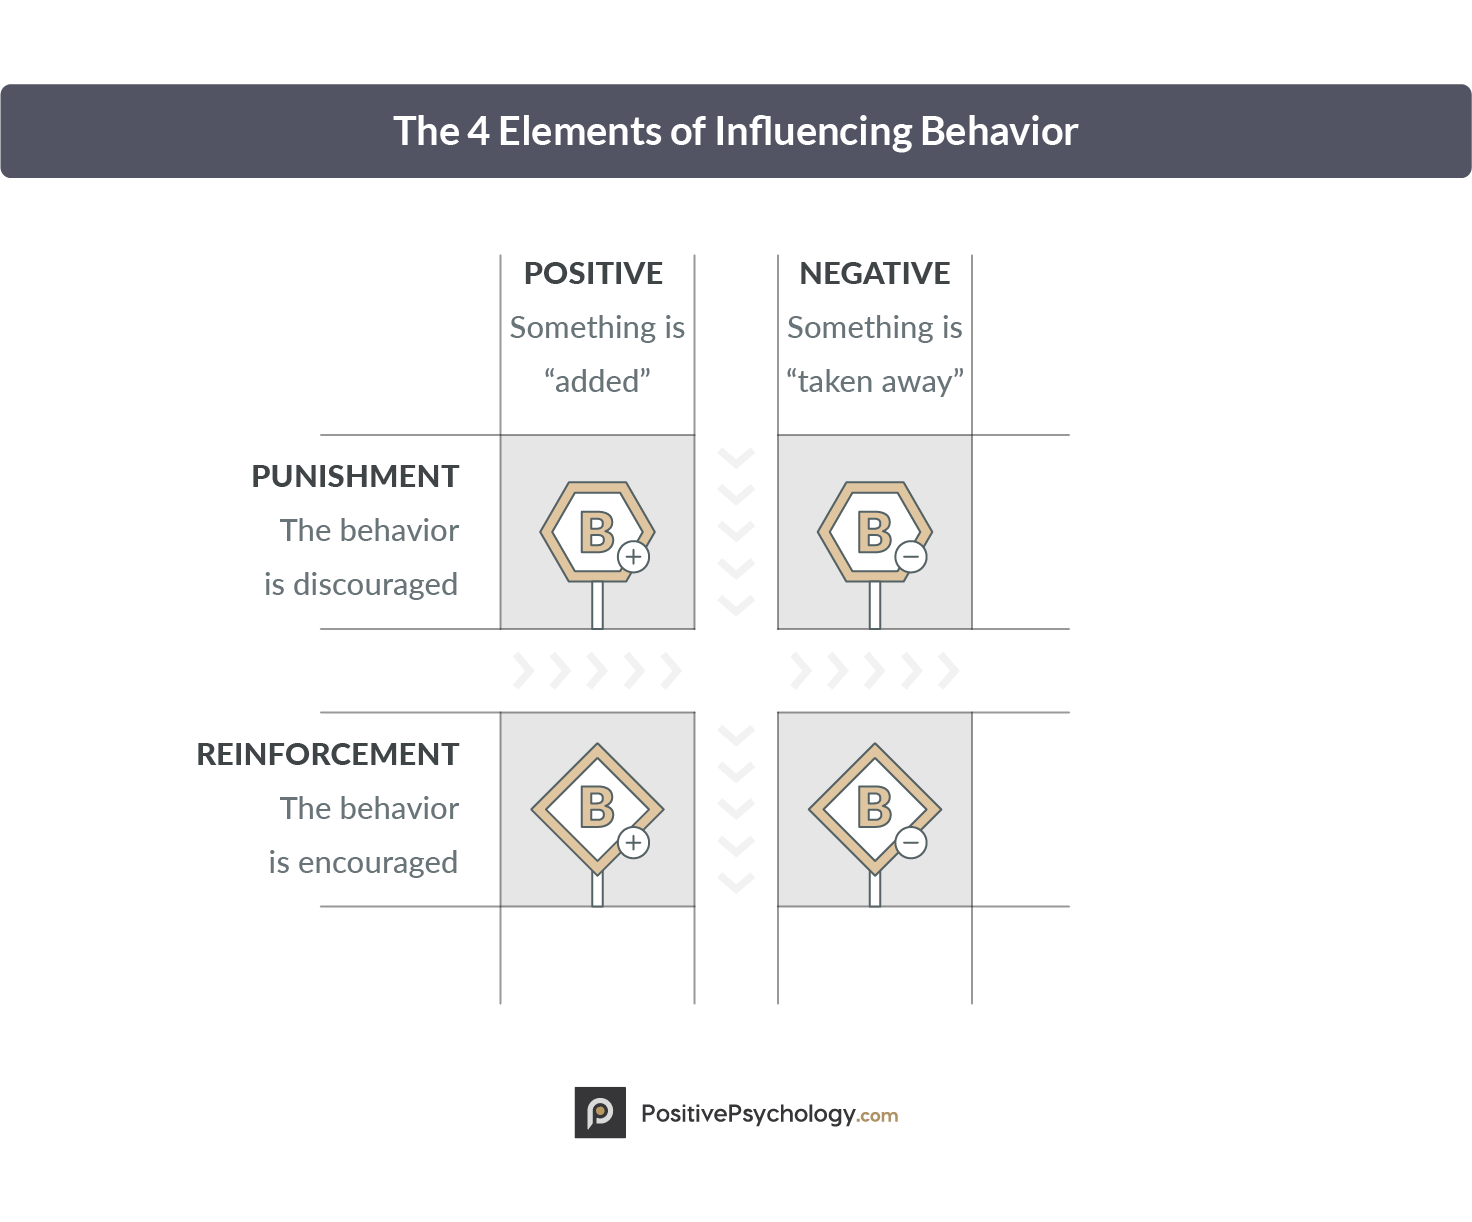 The 4 Elements of Influencing Behavior